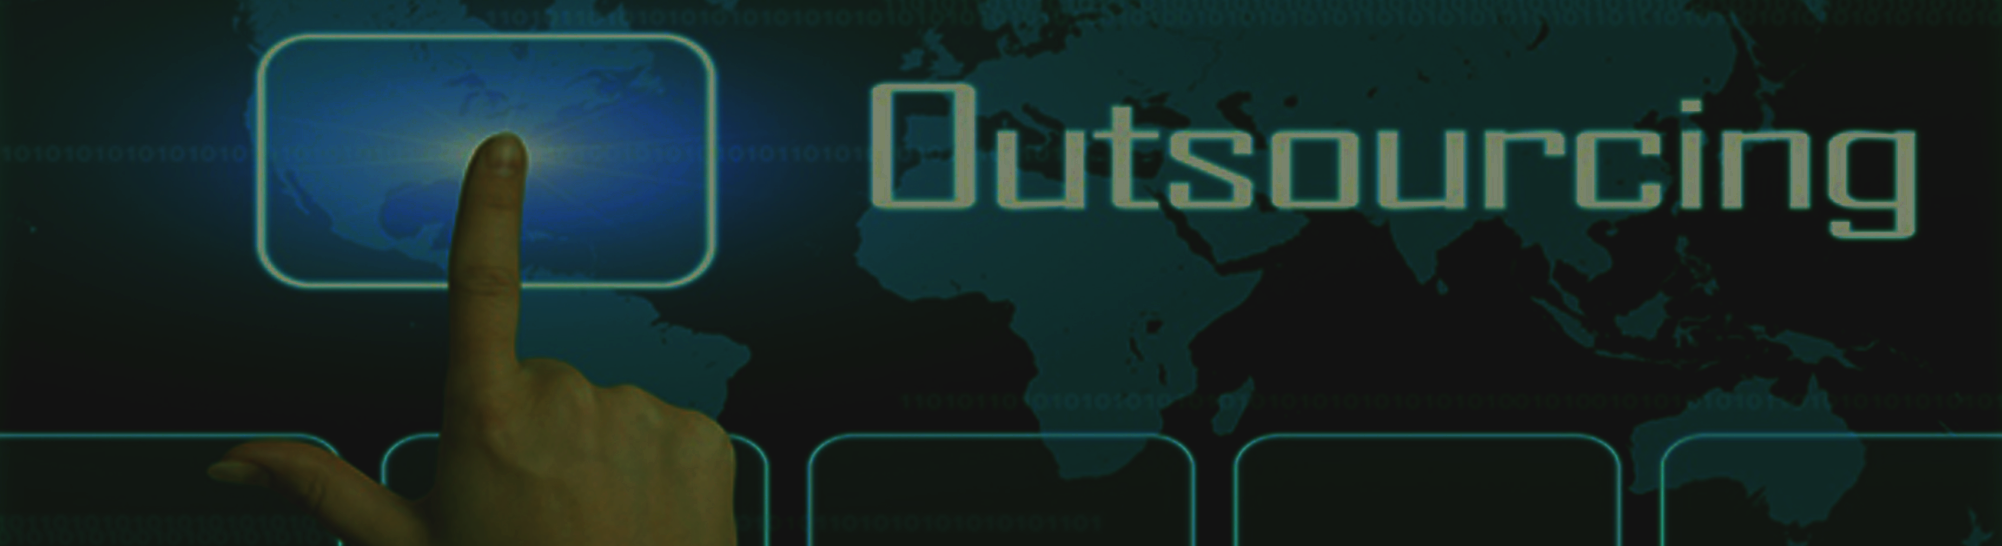 Outsourcing-BANNER3